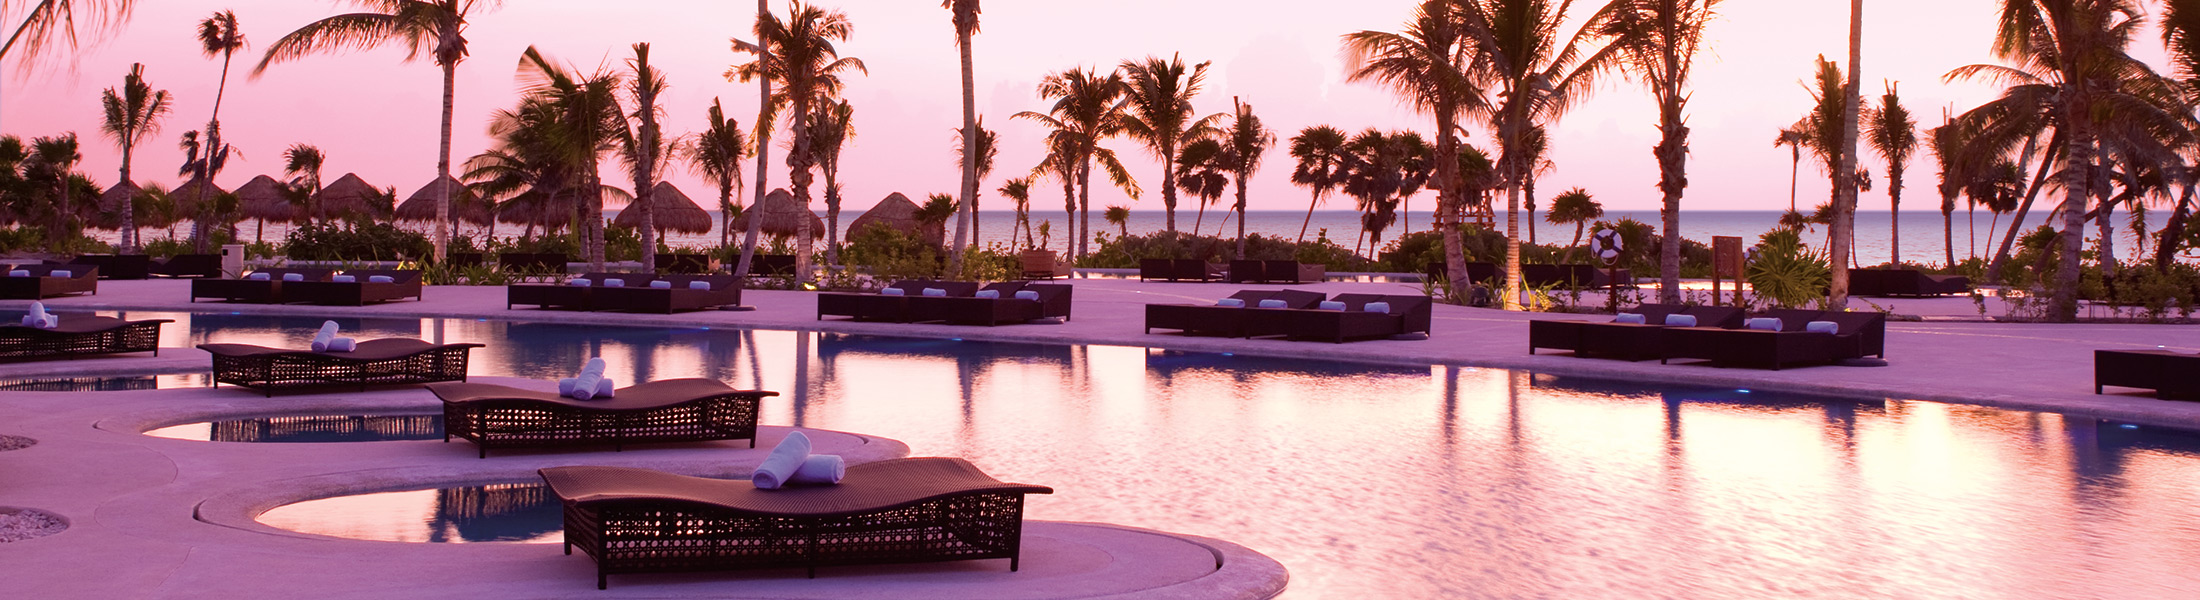 Sunrise over the infinity pool at Secrets Maroma Beach Riviera